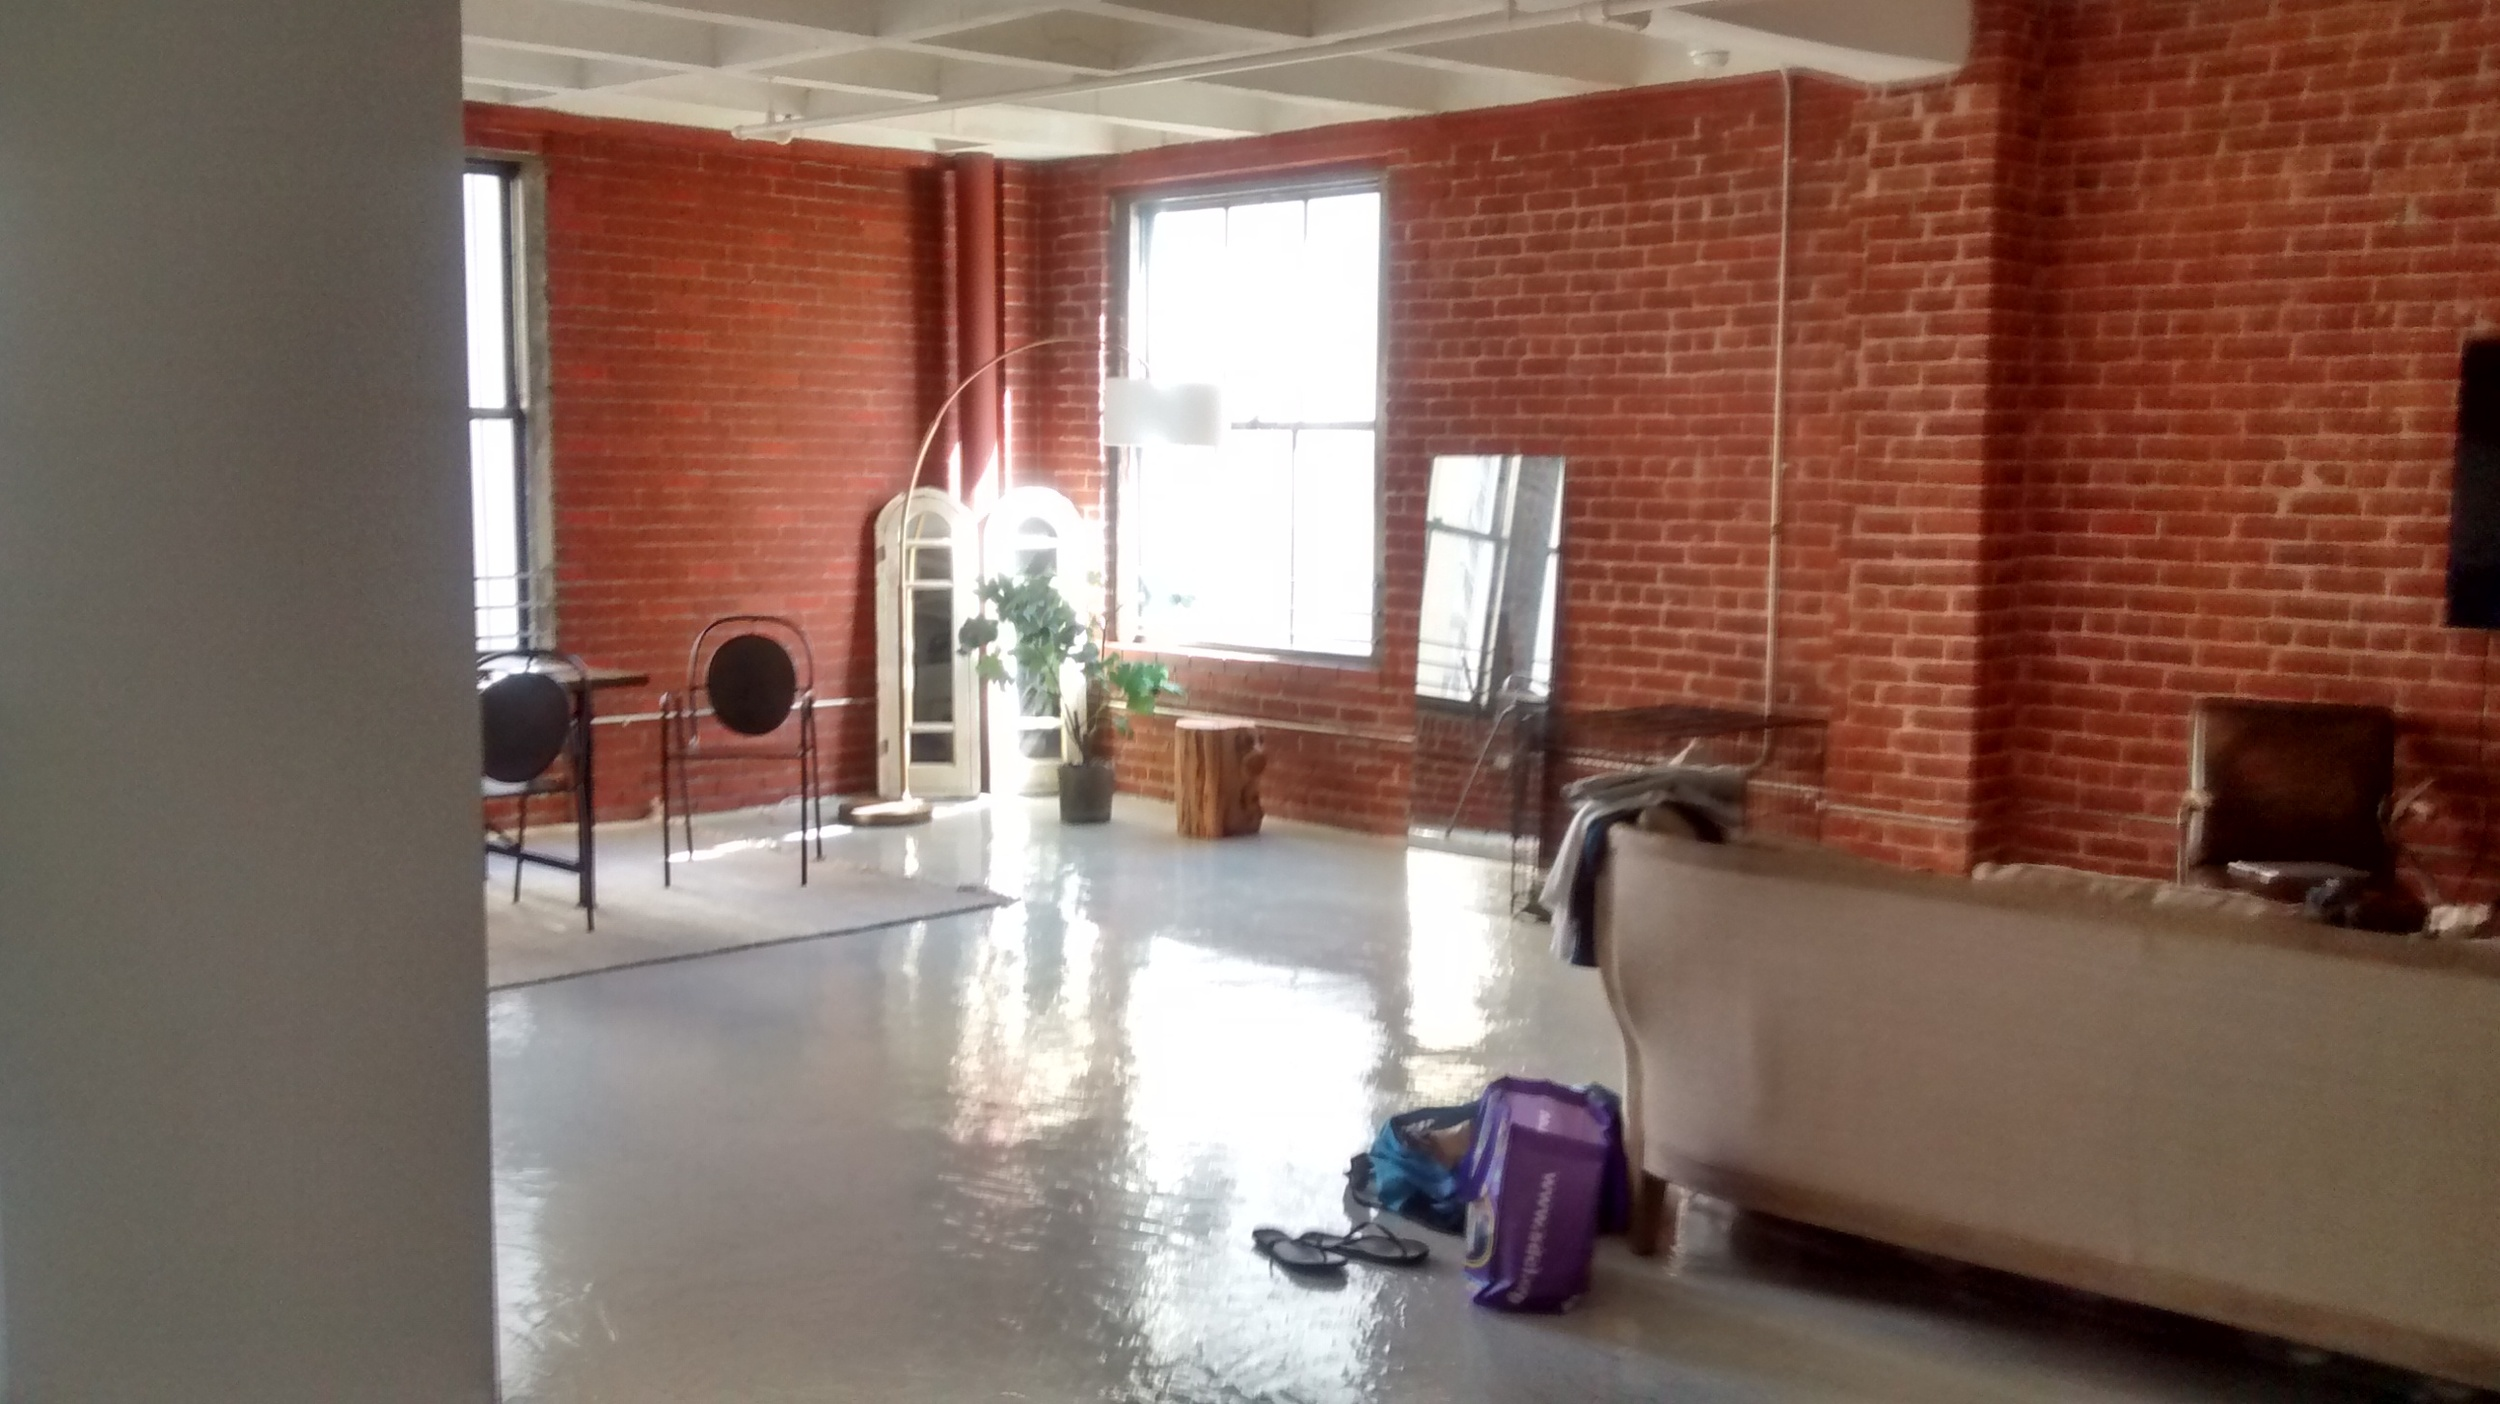 Our beautiful Airbnb loft